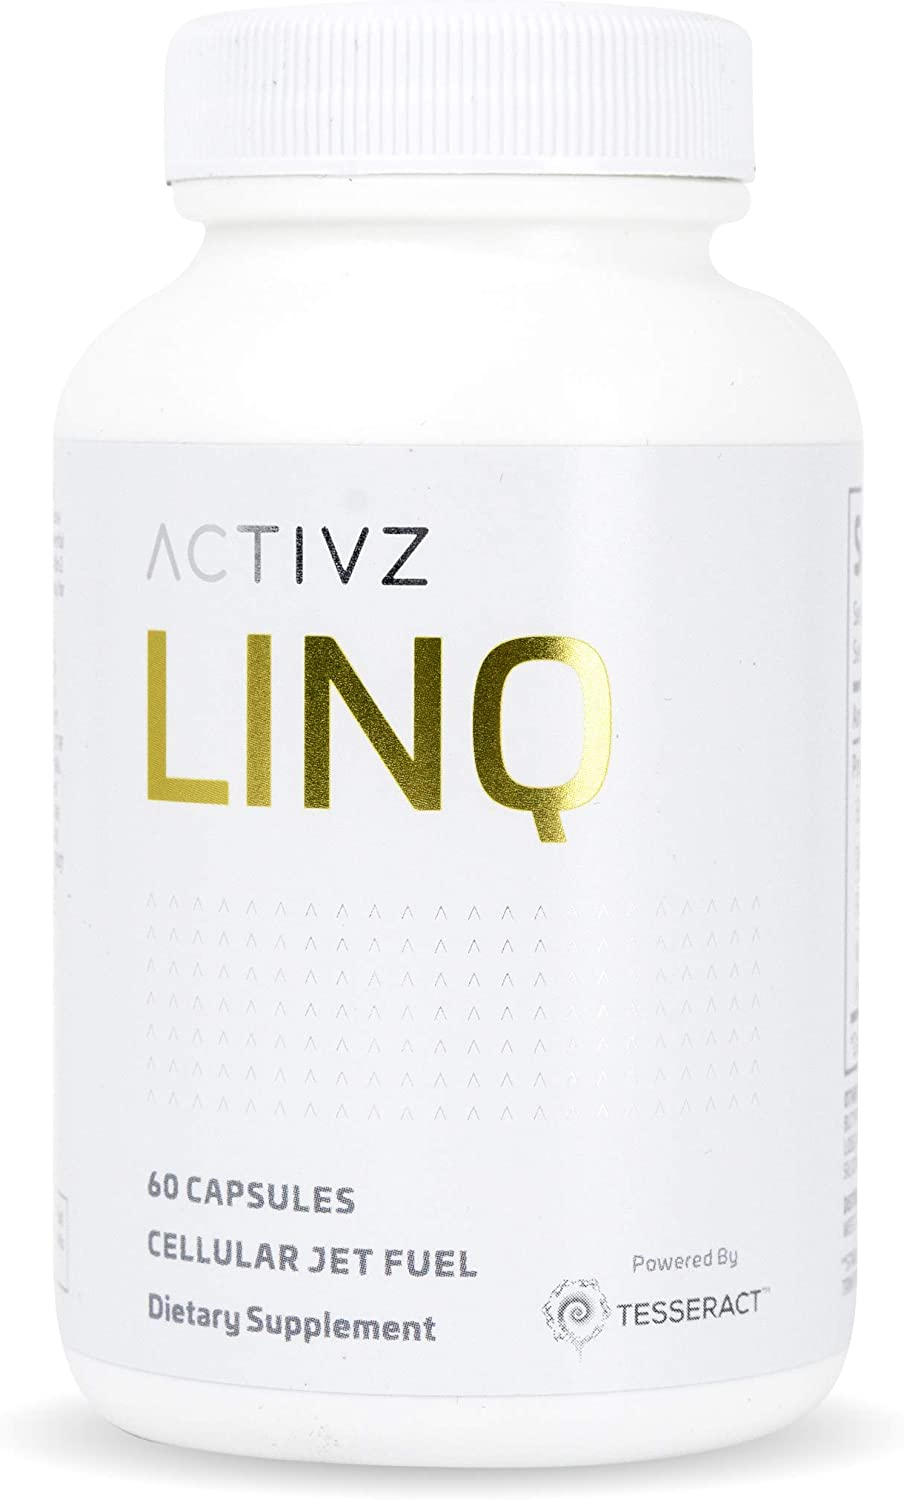 LINQ Cellular Jet Fuel – Leaky Gut Management – Gut Brain Connection – Highly Bioavailable Butyric Acid Supplement – Patented Delivery Technology 60 Capsules, 1 Month Supply